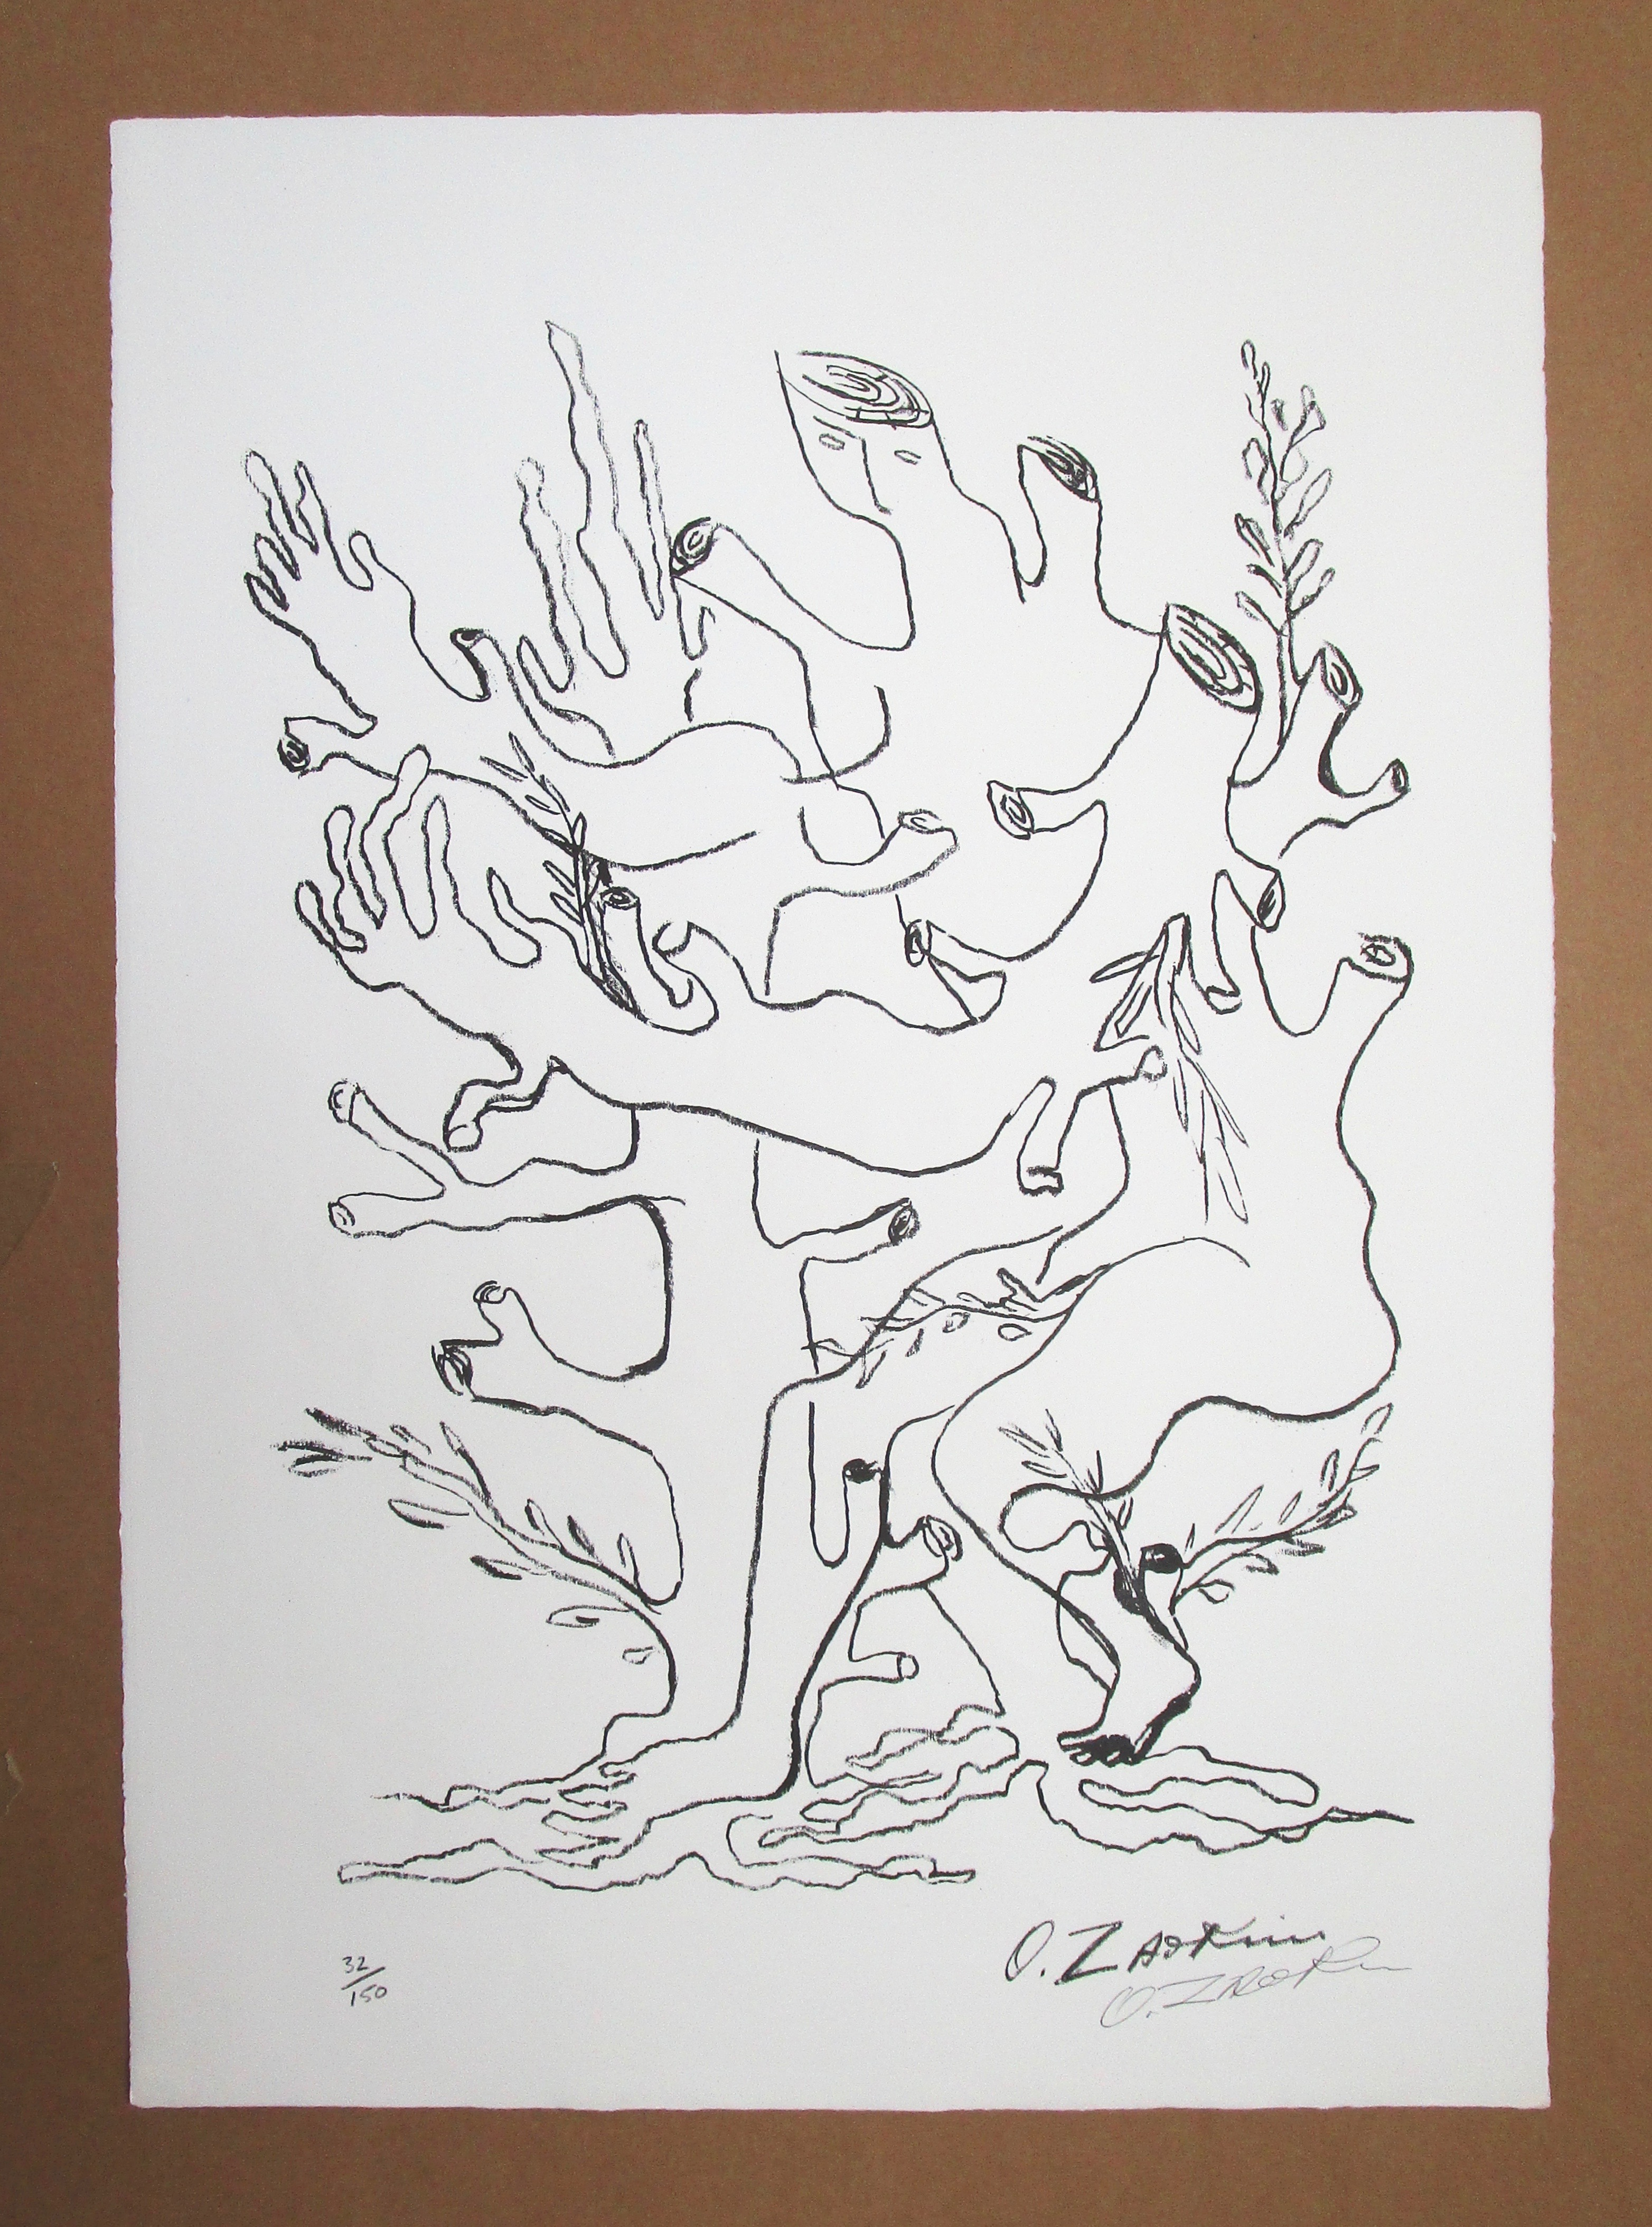 Lot 20 - OSSIP ZADKINE [1888-1967] Daphne Treeform, 1964.lithograph on Barcham Green paper, edition of 150,